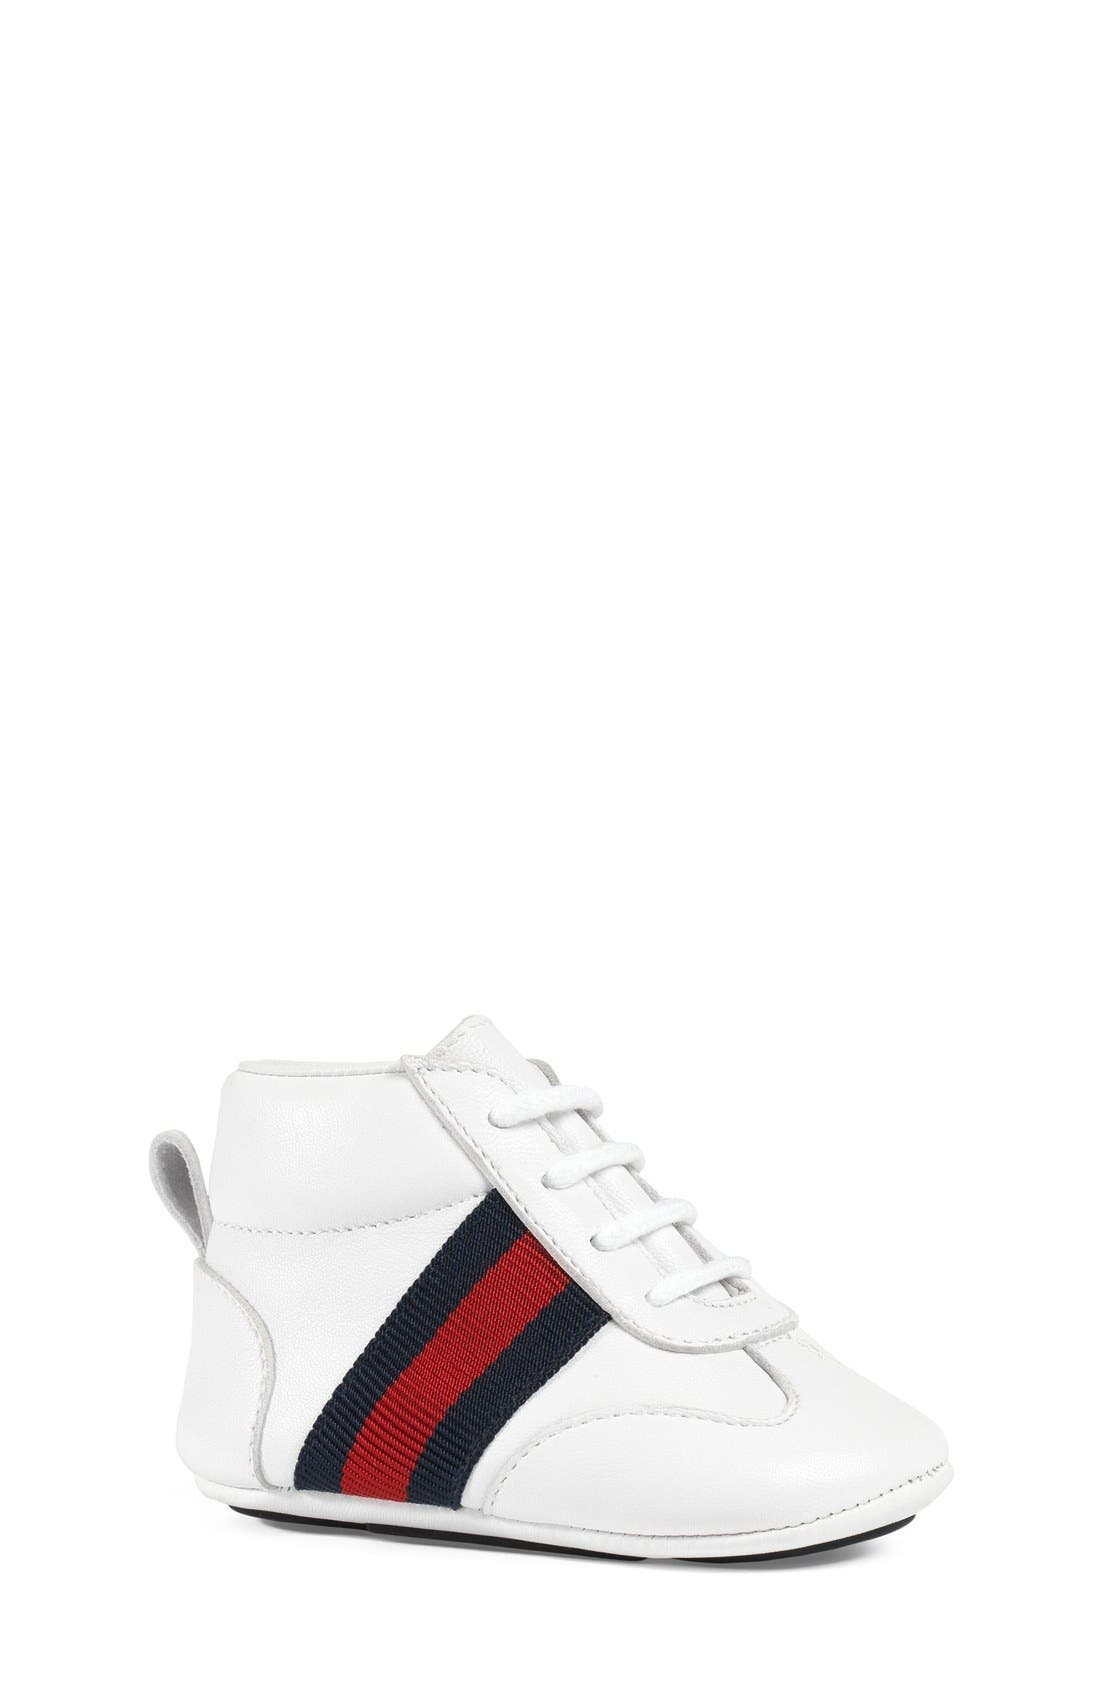 GUCCI 'Peter' Crib Shoe